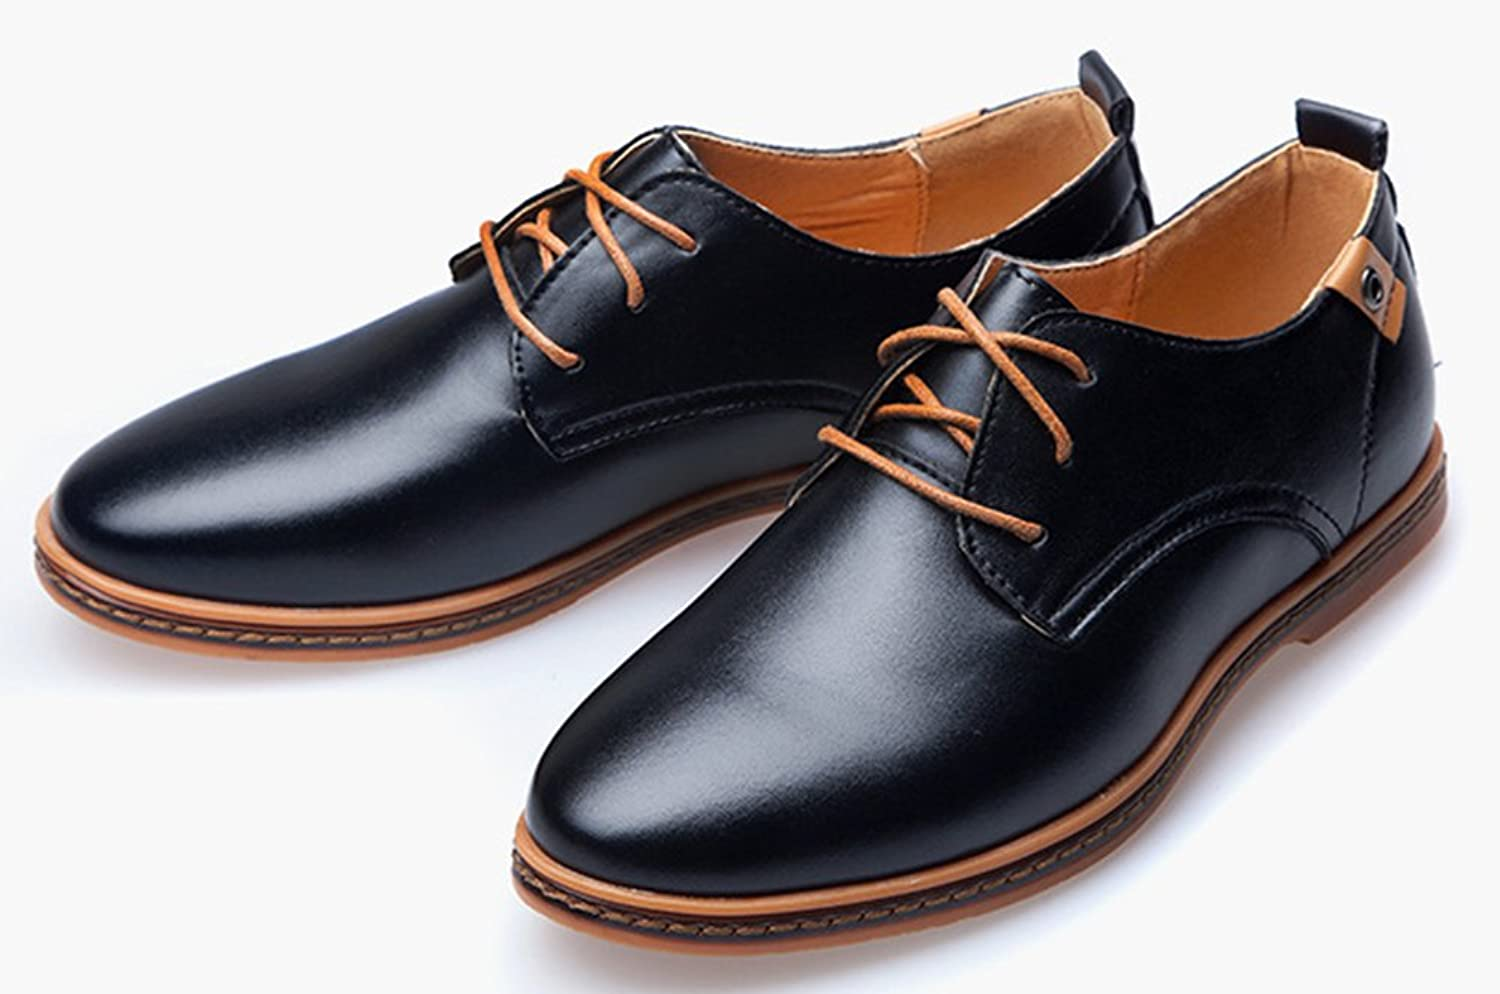 Men Leather Flat Outdoor Casual Lace Up Soft Round Toe Oxfords Sneaker Shoes. Sale price $ $ 3Colors Big Size Men Formal Leather Oxfords Slip On Round Toe Shoes Soft Bottom Oxfords. Sale price $ $ 2Colors%OFF. Big Size Men Hook Loop Genuine Leather Oxfords .